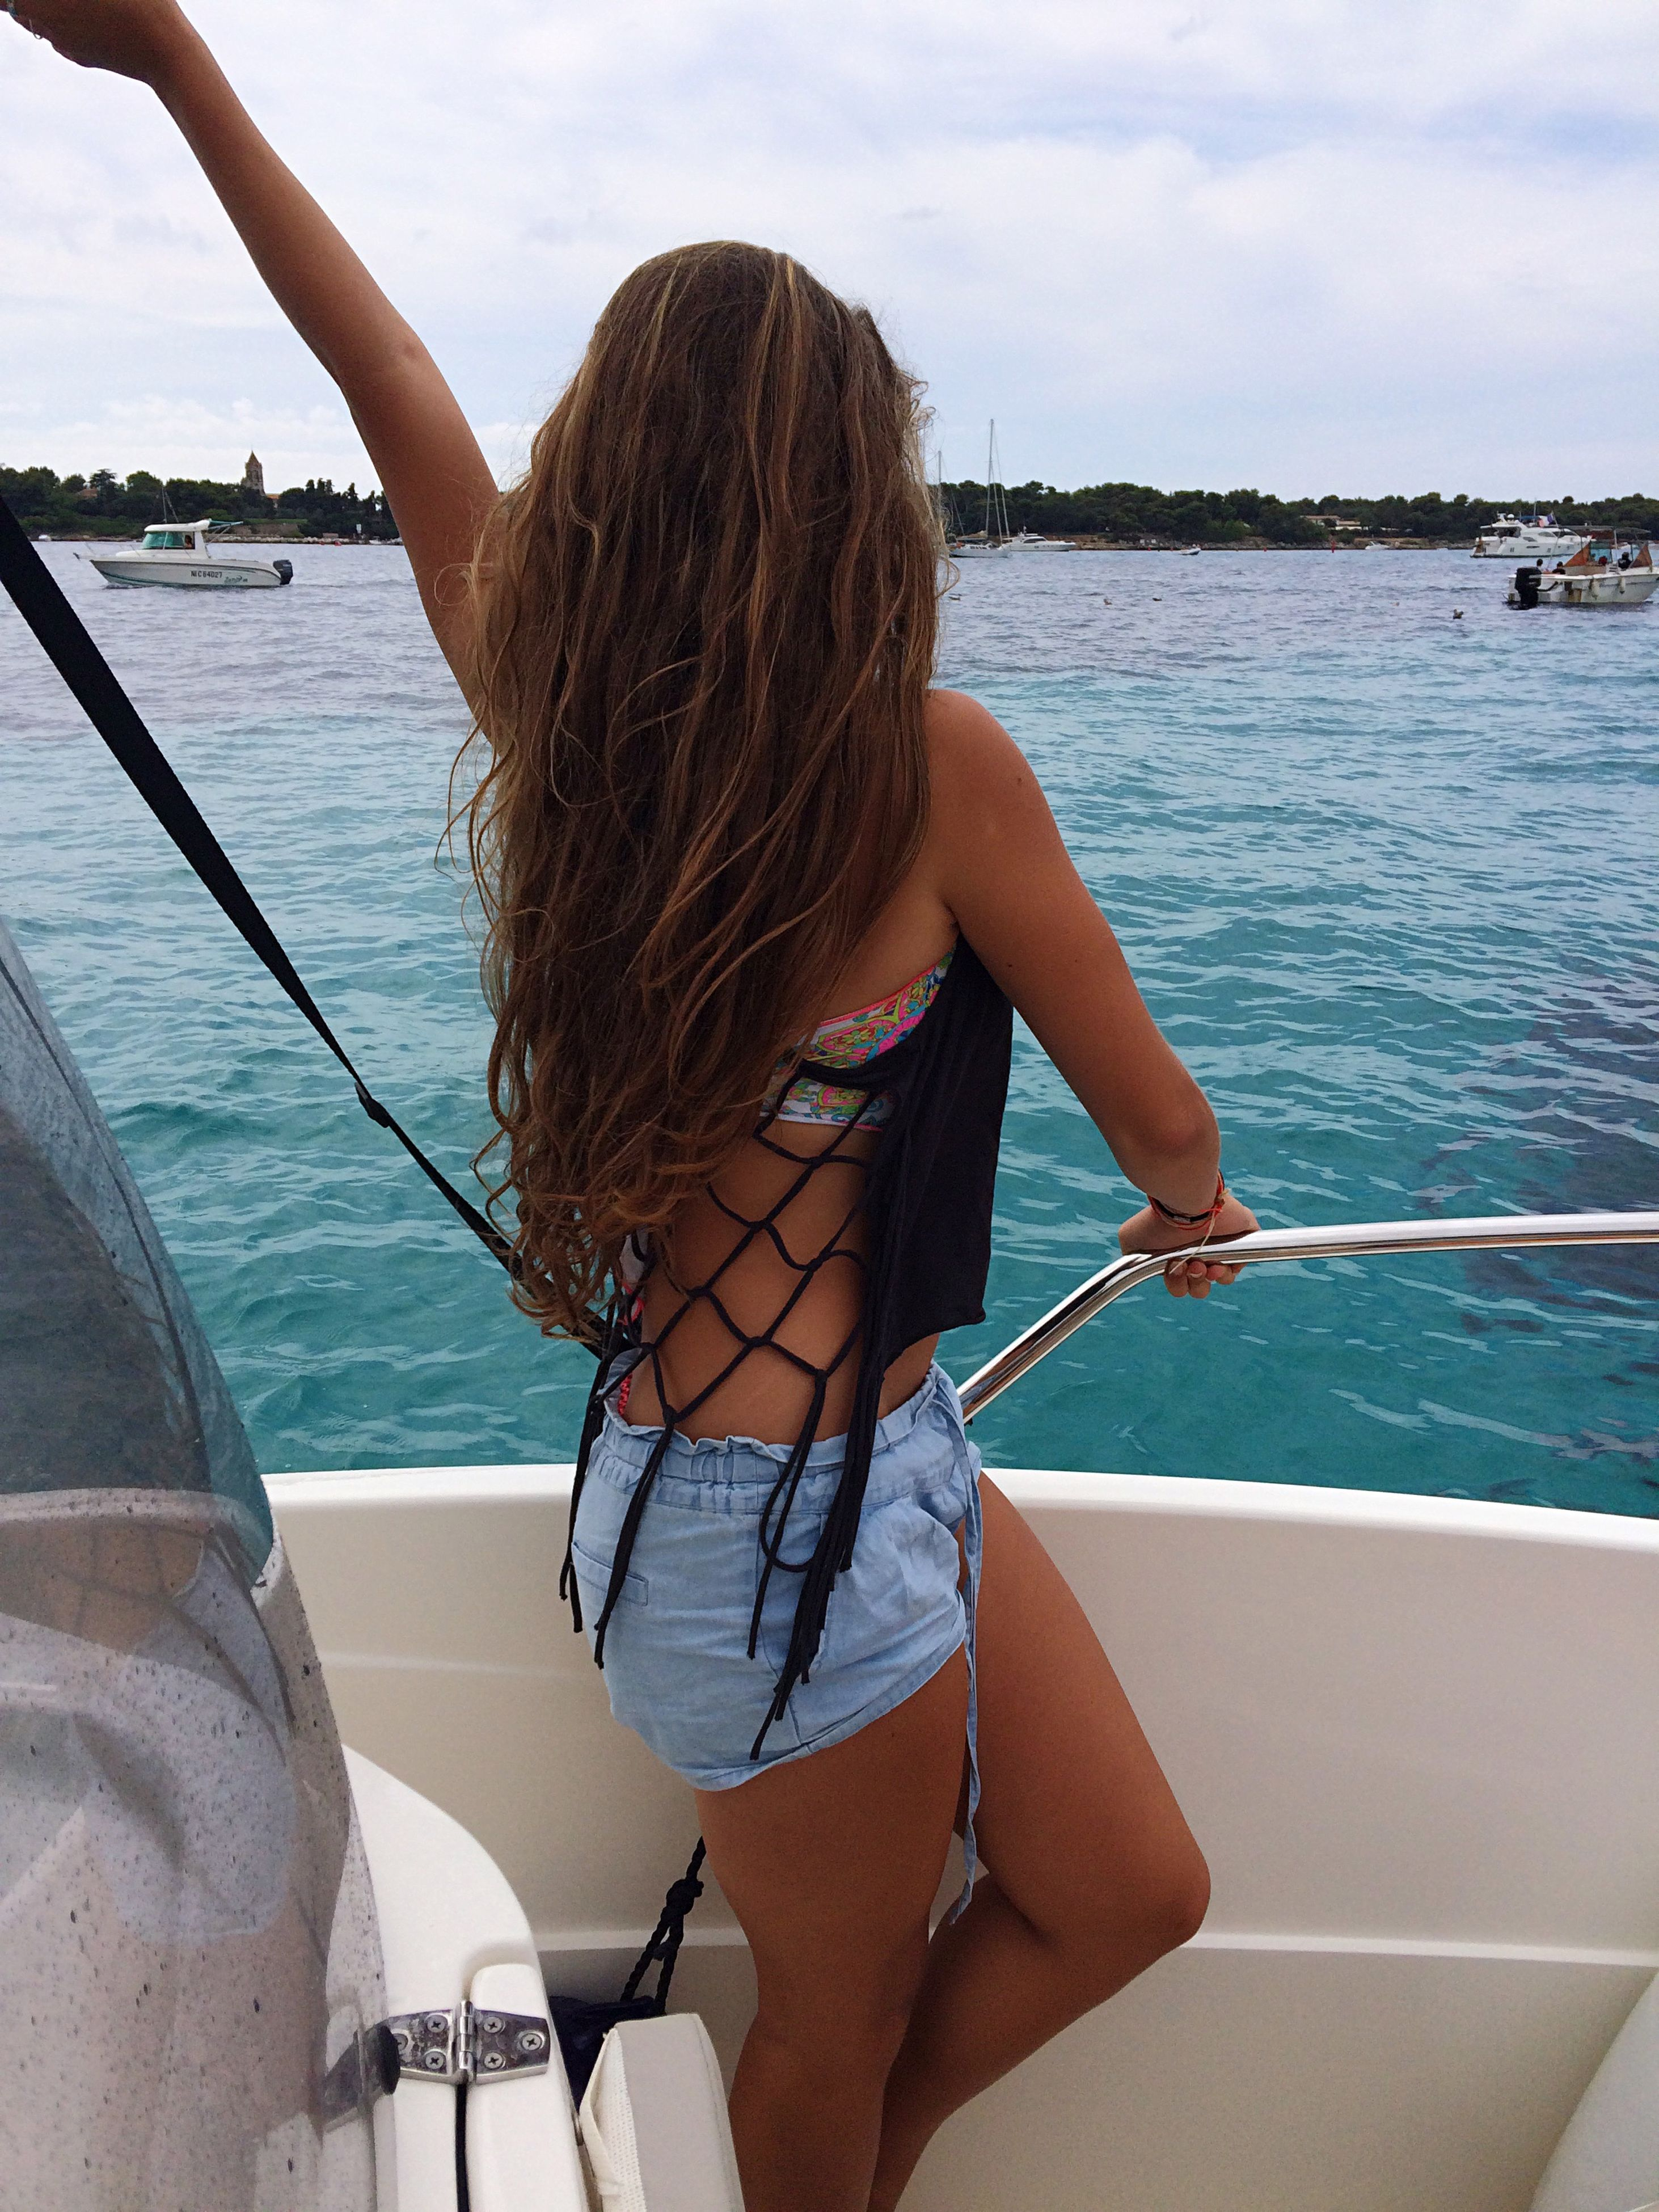 water, sea, lifestyles, leisure activity, young adult, young women, sky, long hair, person, rear view, vacations, bikini, nautical vessel, day, standing, outdoors